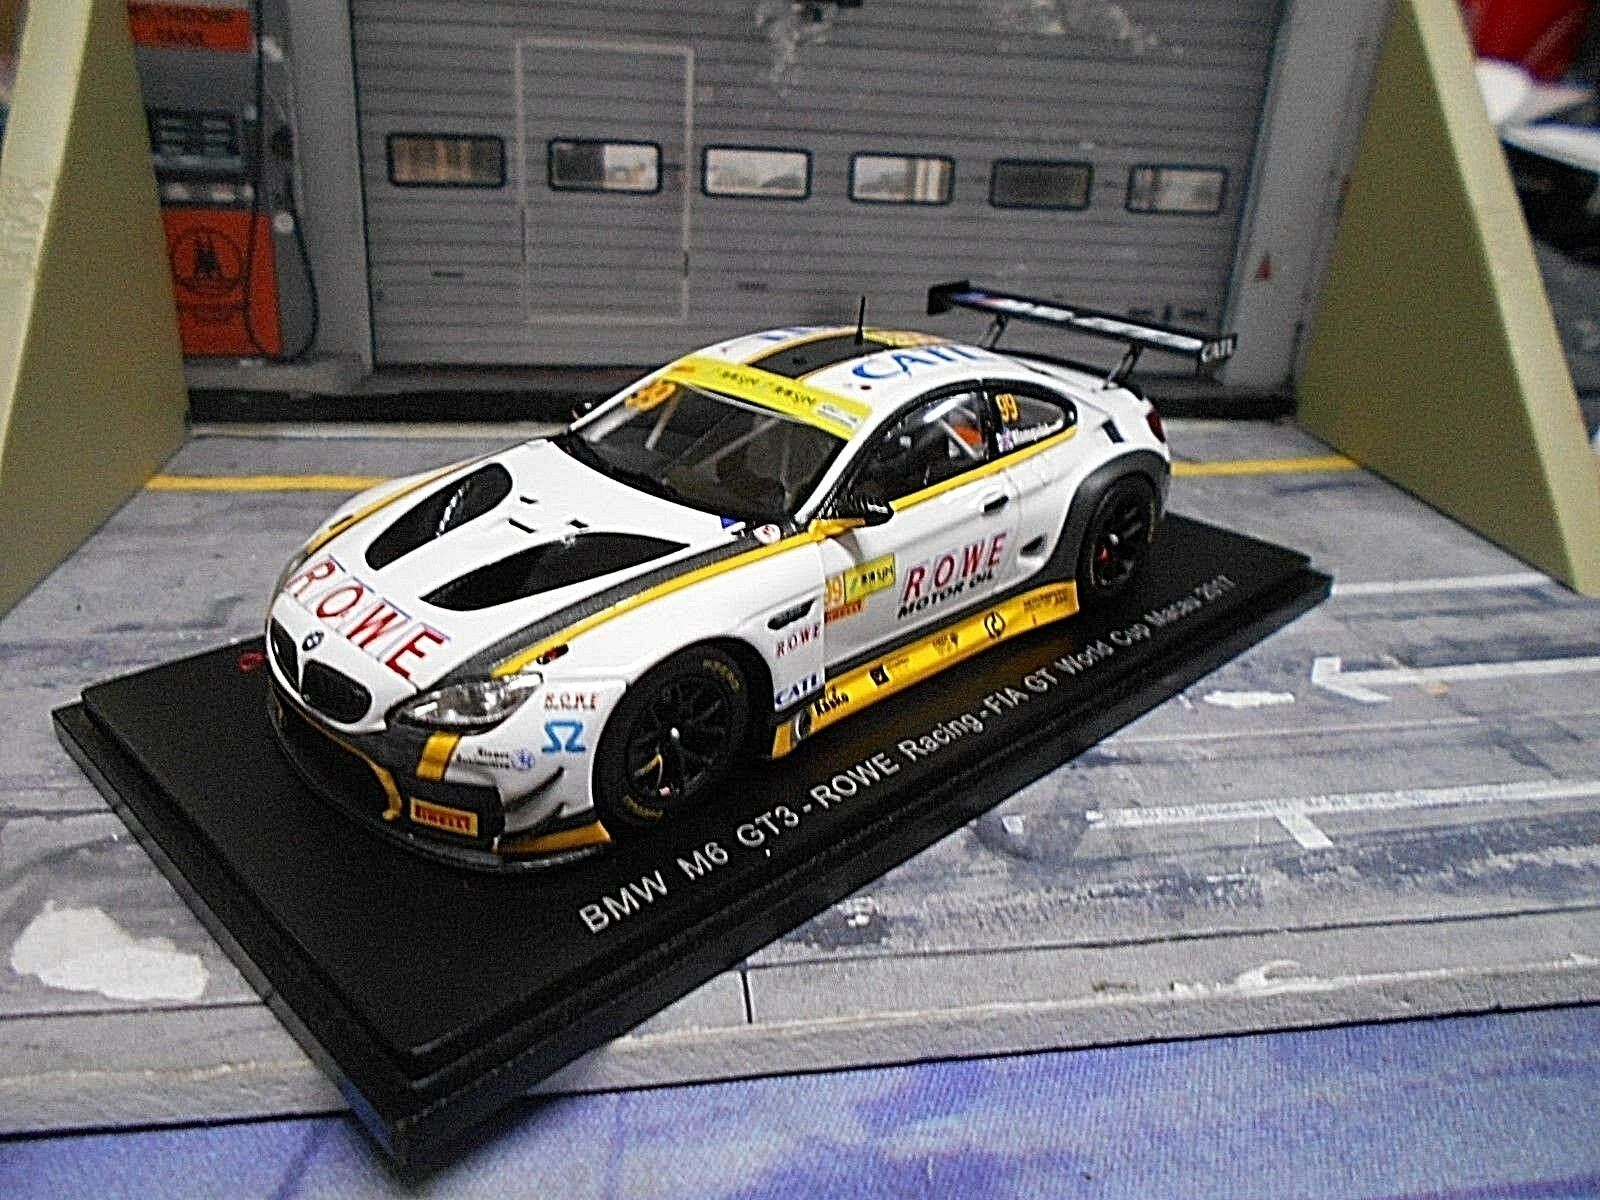 BMW m6 gt3 24h 24h 24h 2017 Macao World Cup  99 Rowe Blomqvist catl NUOVO SPARK 1 43 1cc36c